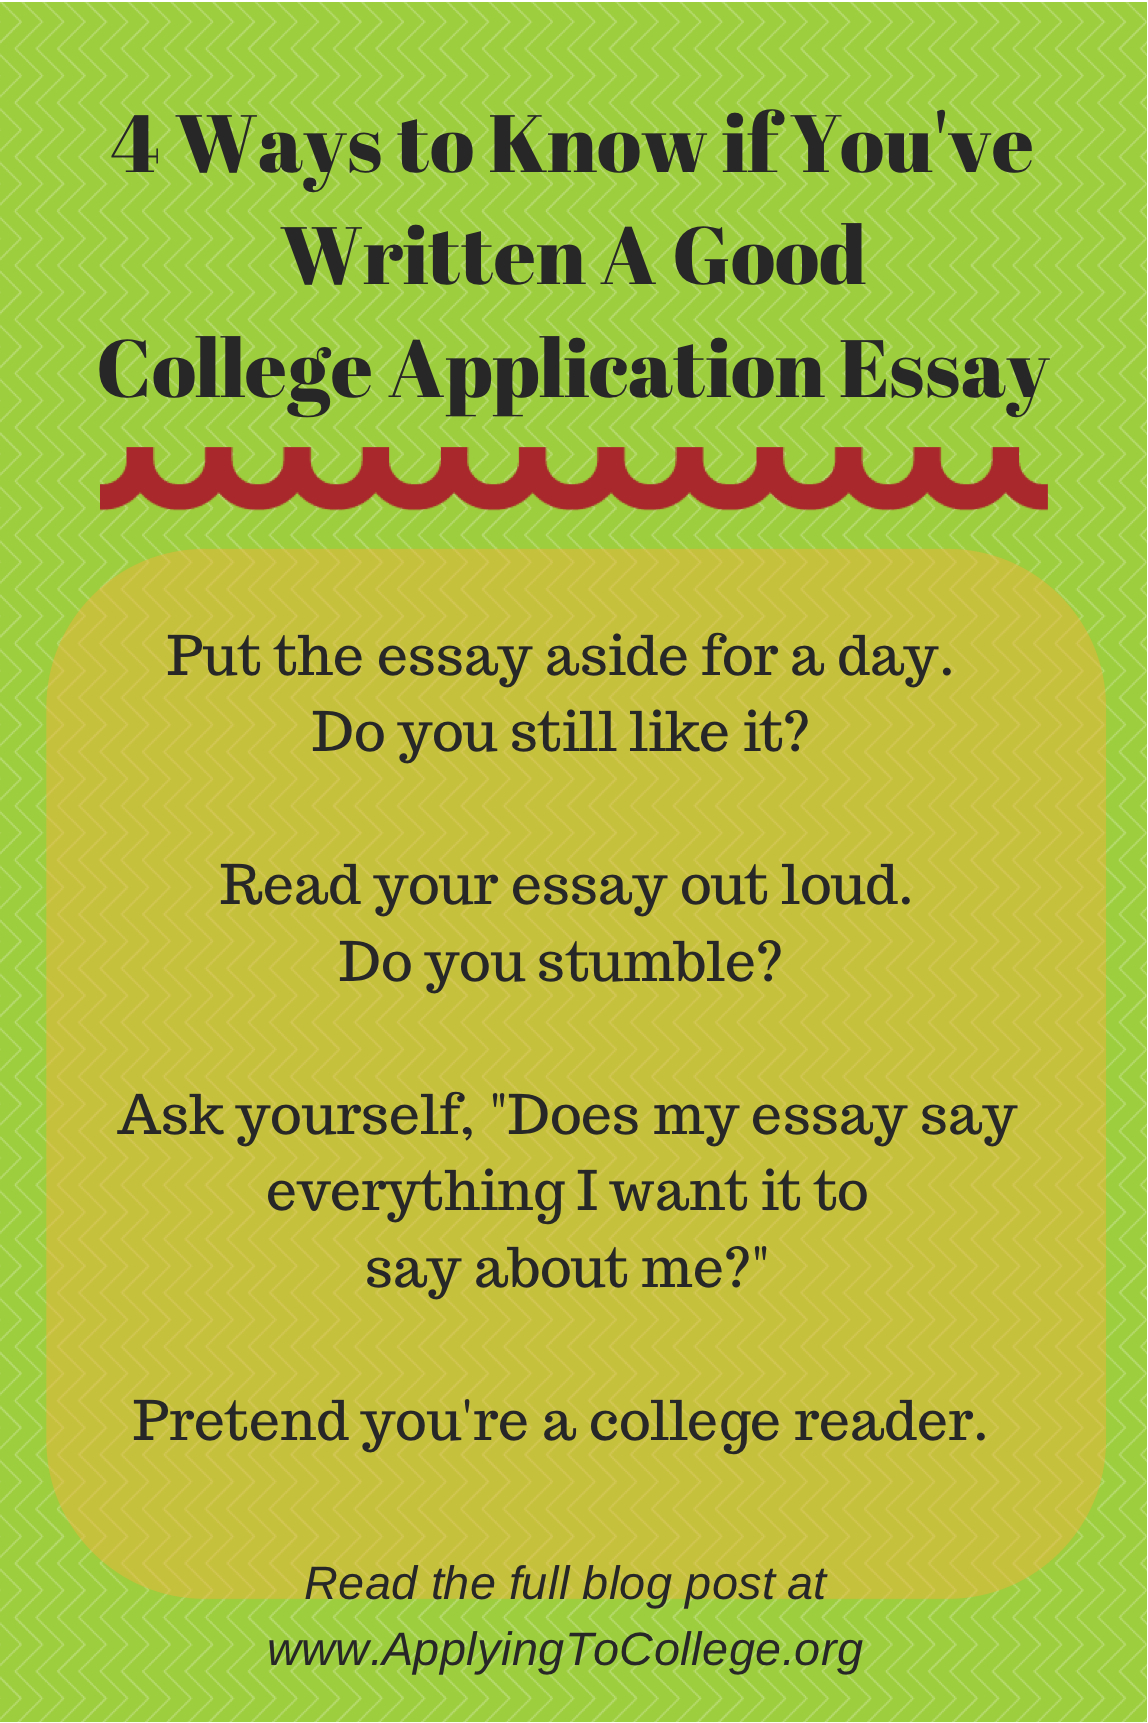 consulting college essay With over 3,500 success stories and 30 years of combined experience, champion college counseling will help you find the right college and.